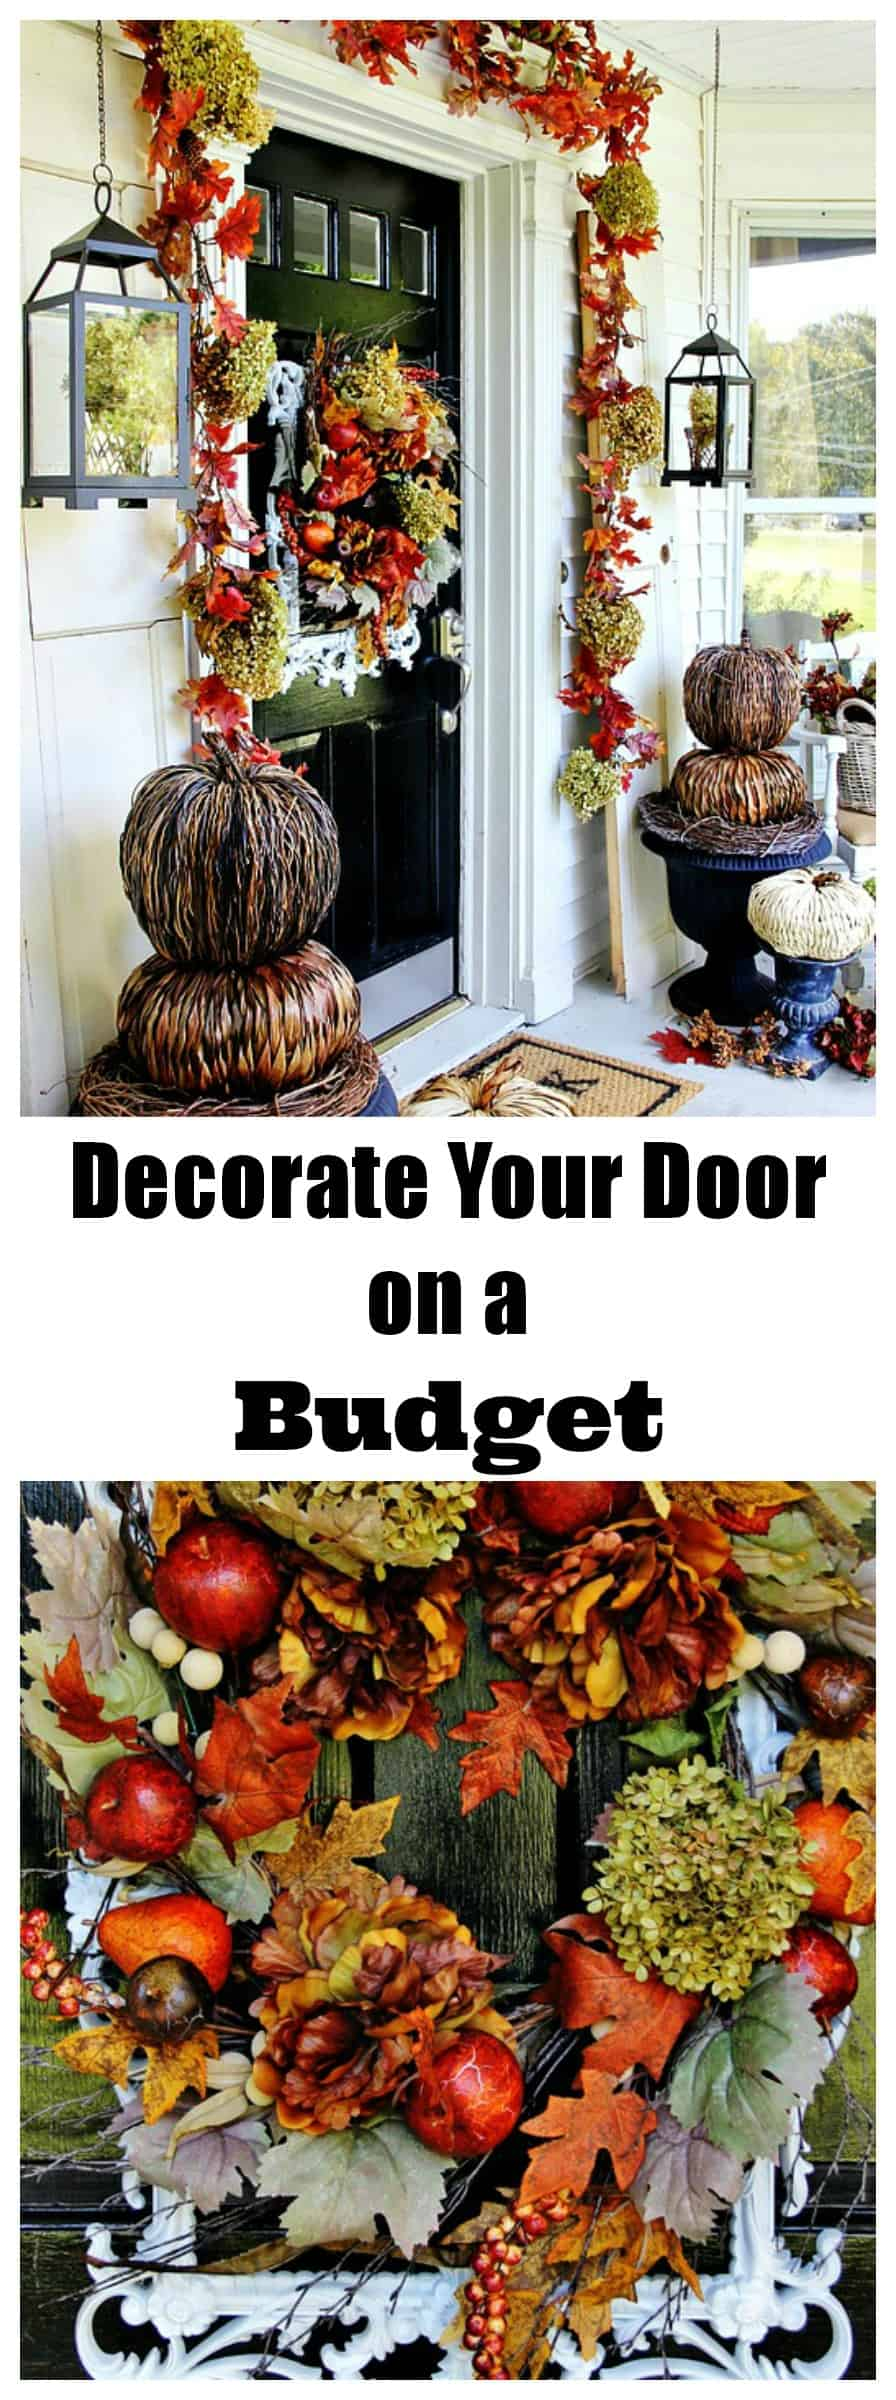 Decorate your front door for fall with these tips without breaking the bank.